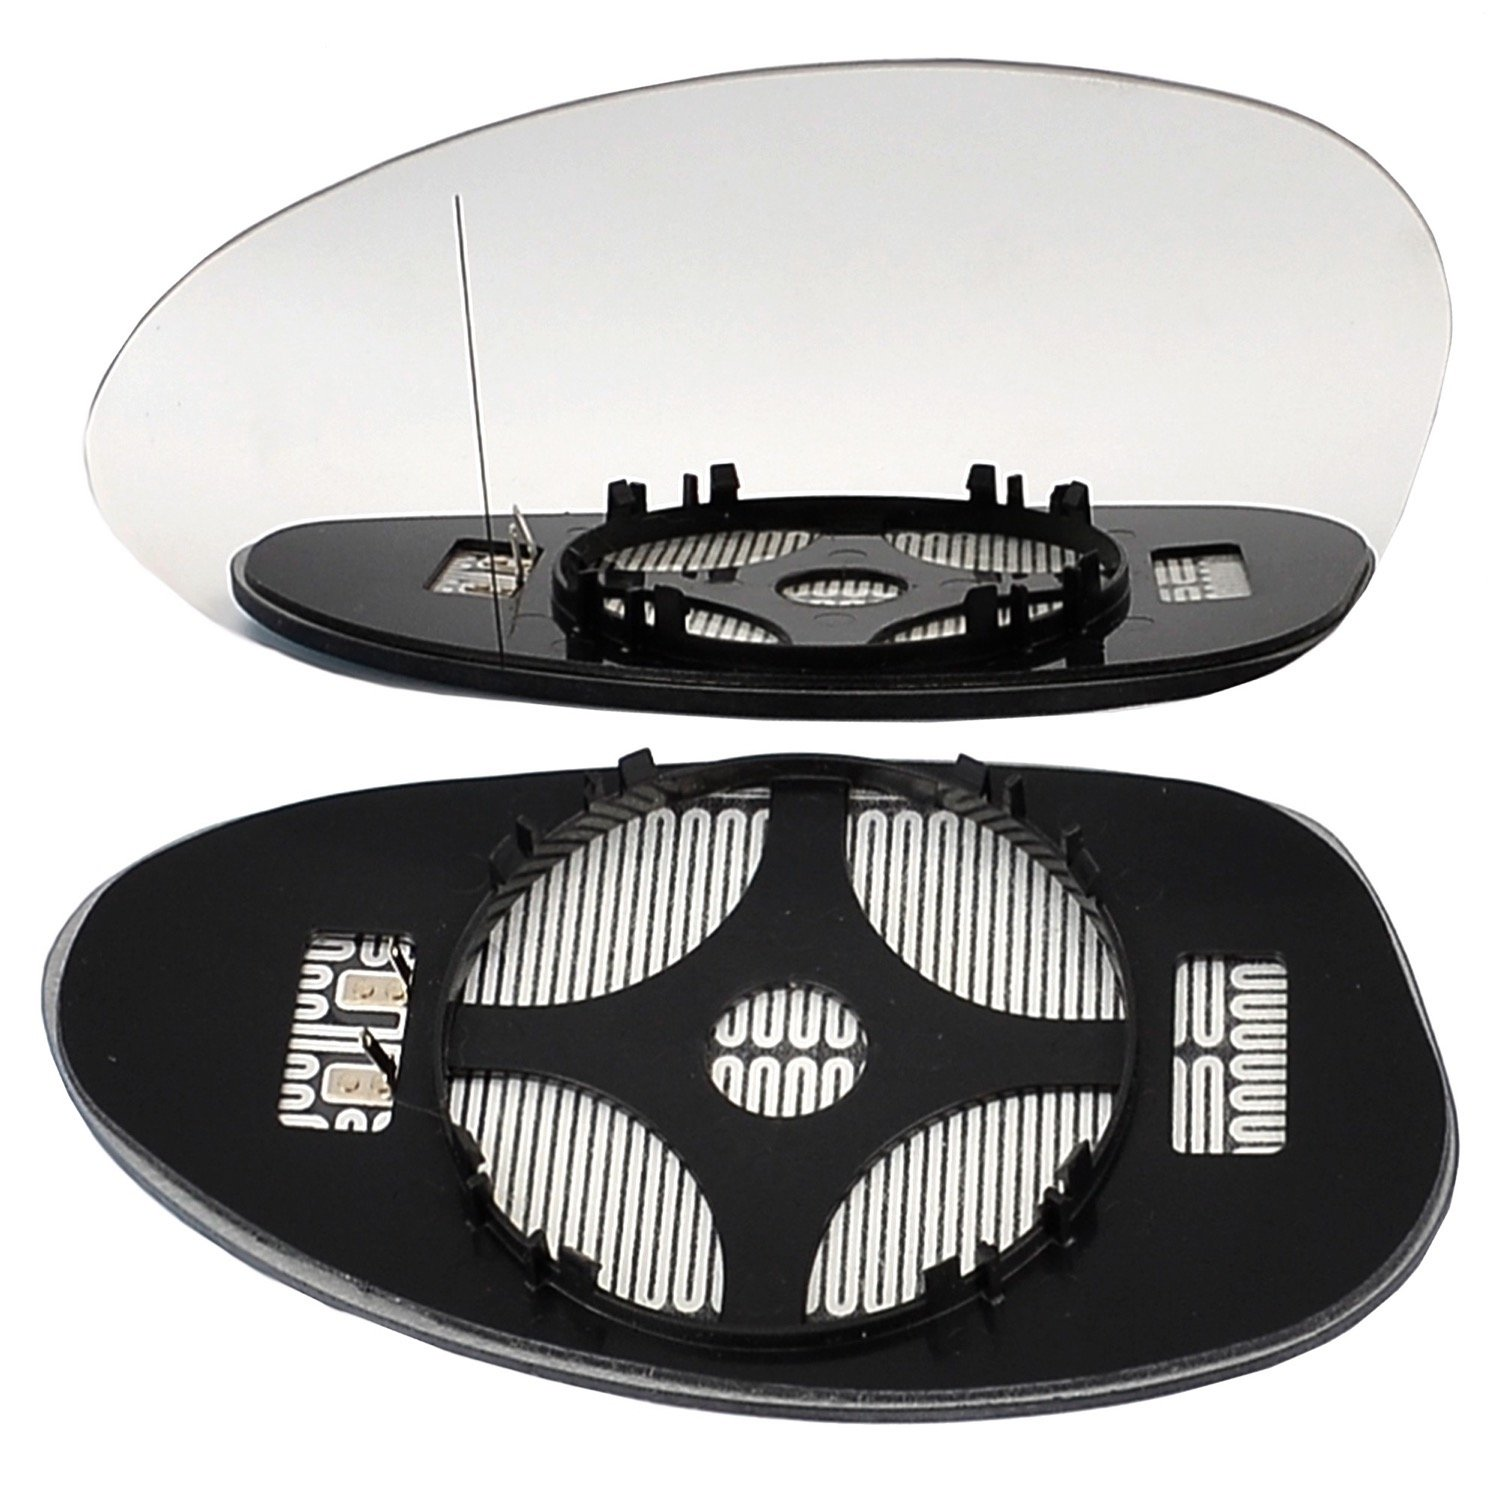 Left passegner side wing door clip mirror glass E90 Wide Angle Heated # BM3 S//HY0-2008175//590